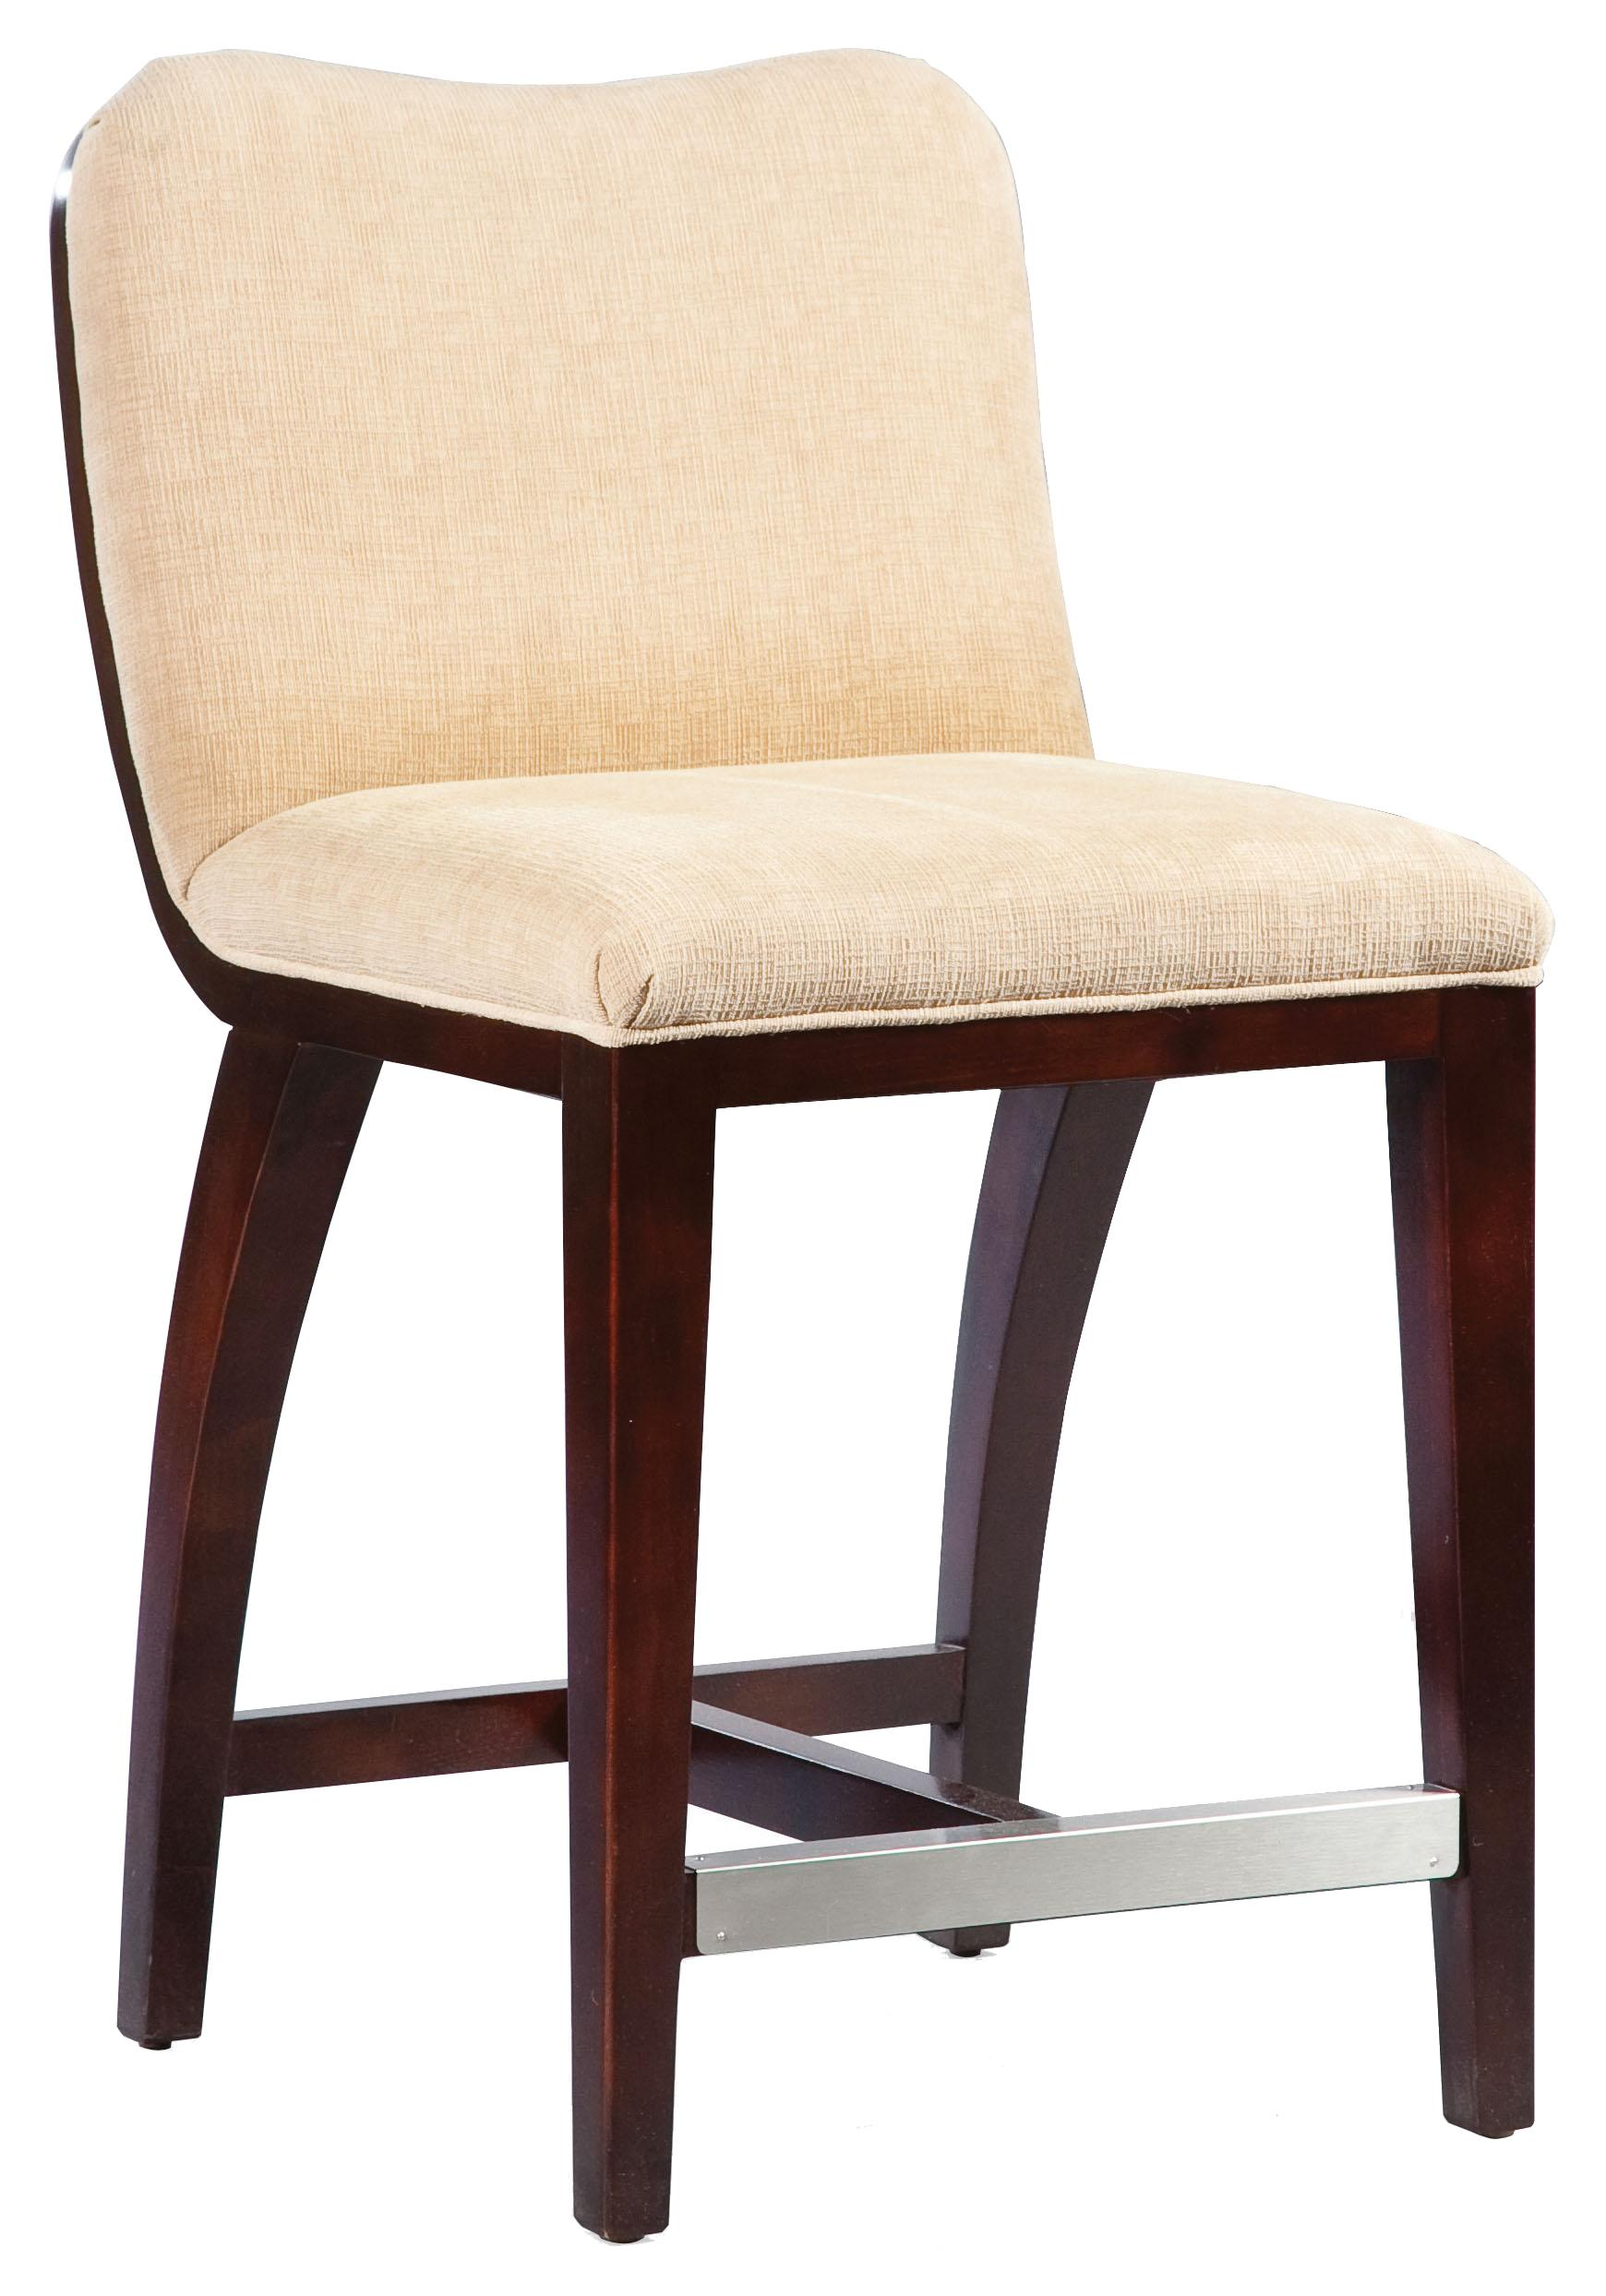 Fairfield barstools high end counter stool with decorative for High end furniture for less